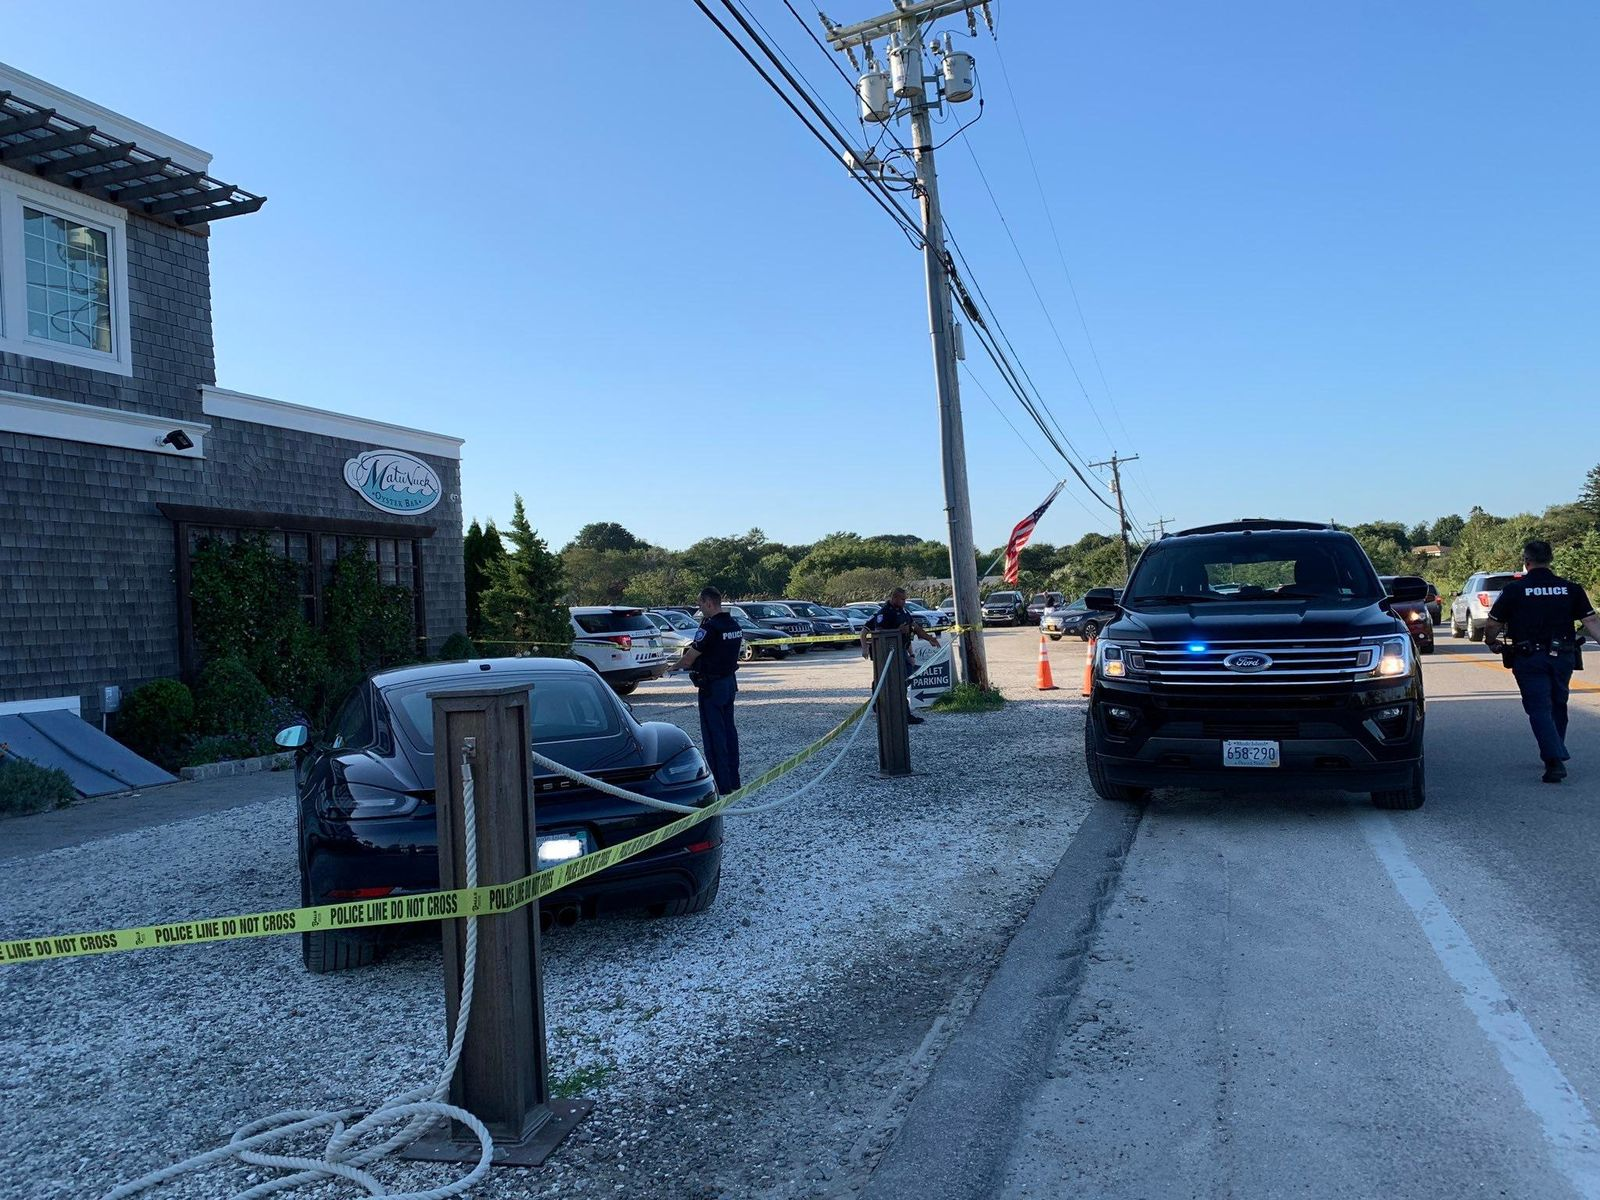 Witnesses told NBC 10 Friday, Aug. 30, 2019 that a driver hit multiple people with car in South Kingstown. (WJAR)